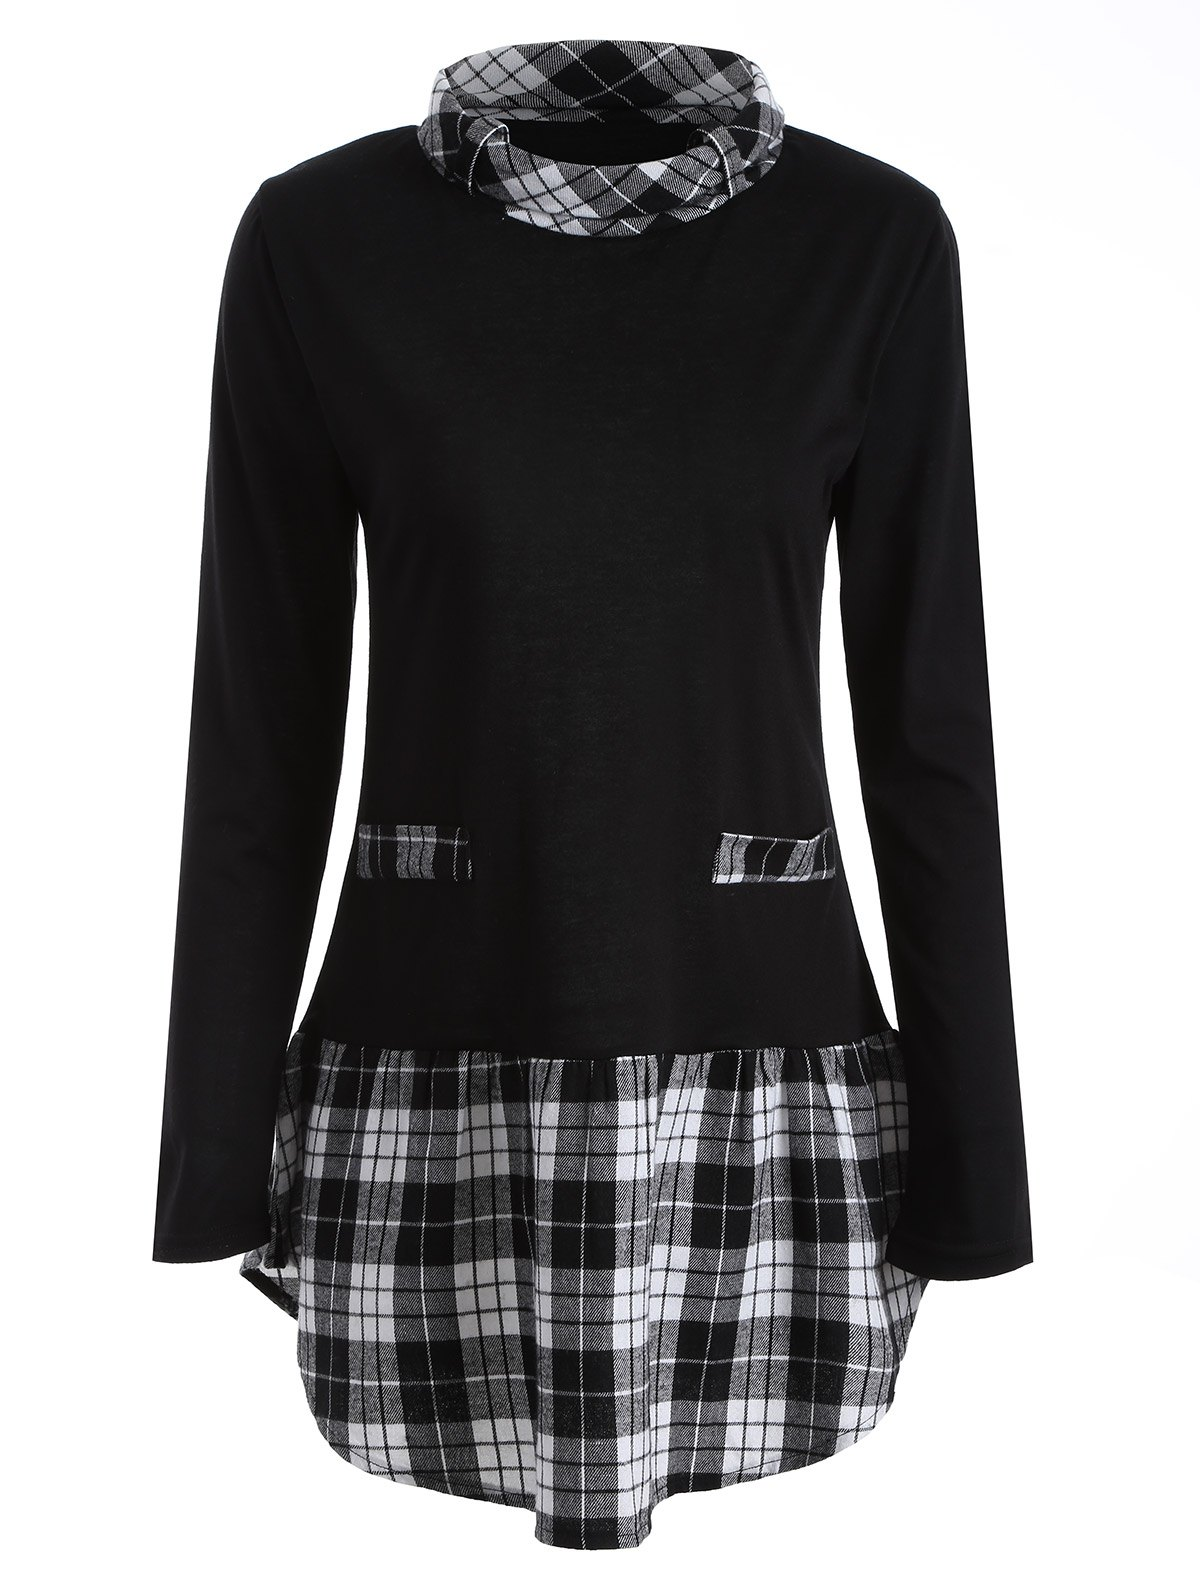 Turtle Neck Plaid Insert TeeWOMEN<br><br>Size: XL; Color: BLACK; Material: Polyester; Sleeve Length: Full; Collar: Turtleneck; Style: Fashion; Pattern Type: Plaid; Season: Fall,Spring; Weight: 0.430kg; Package Contents: 1 x Tee;